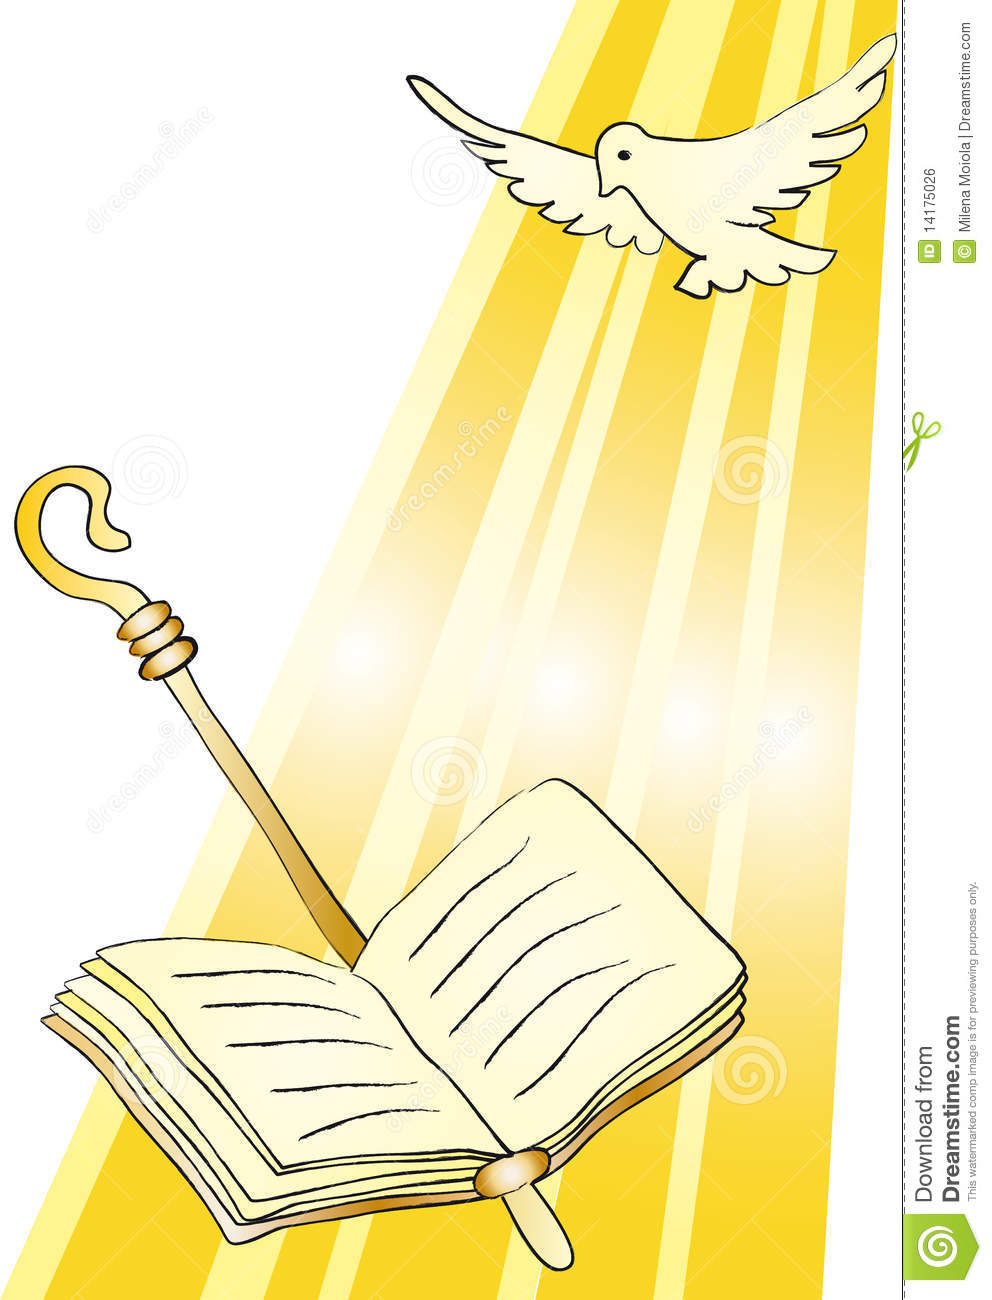 Holy Confirmation Royalty Free Stock Image - Image: 14175026